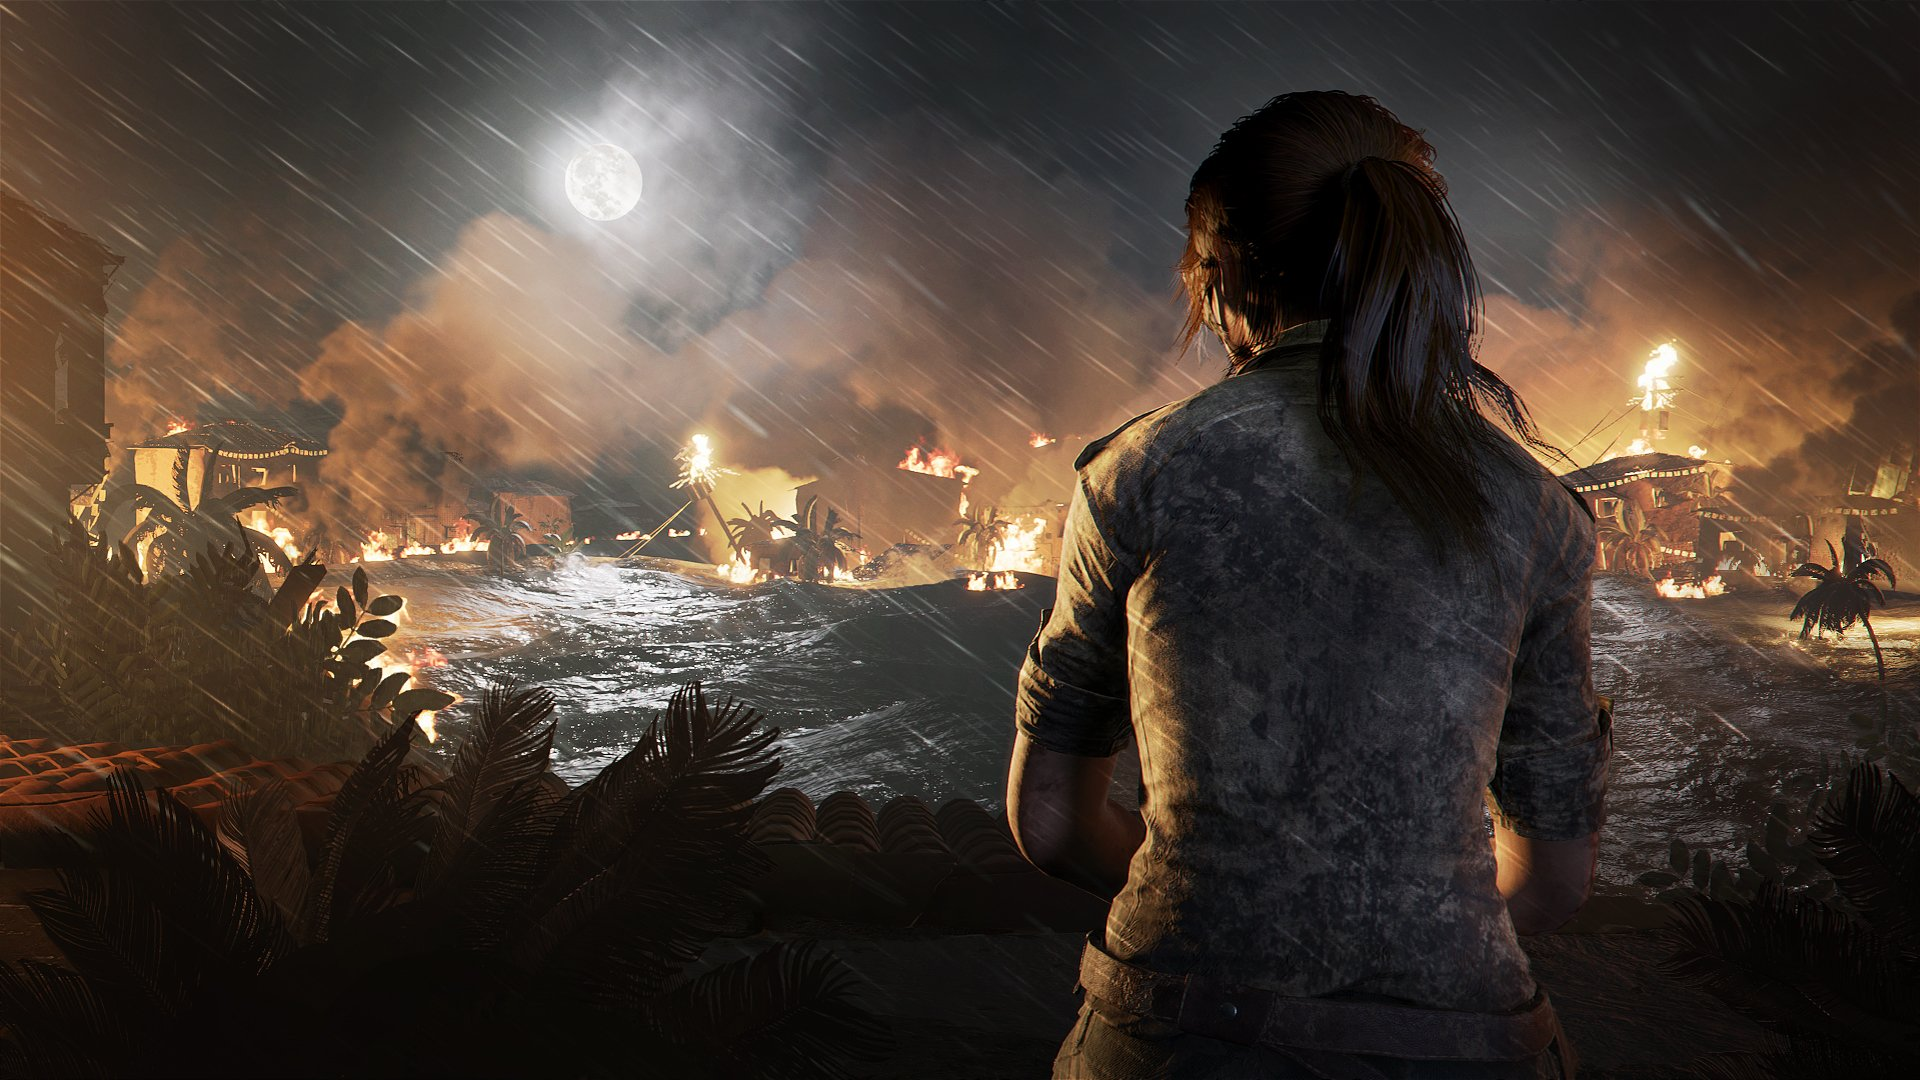 Where does Lara Croft go after Shadow of the Tomb Raider?